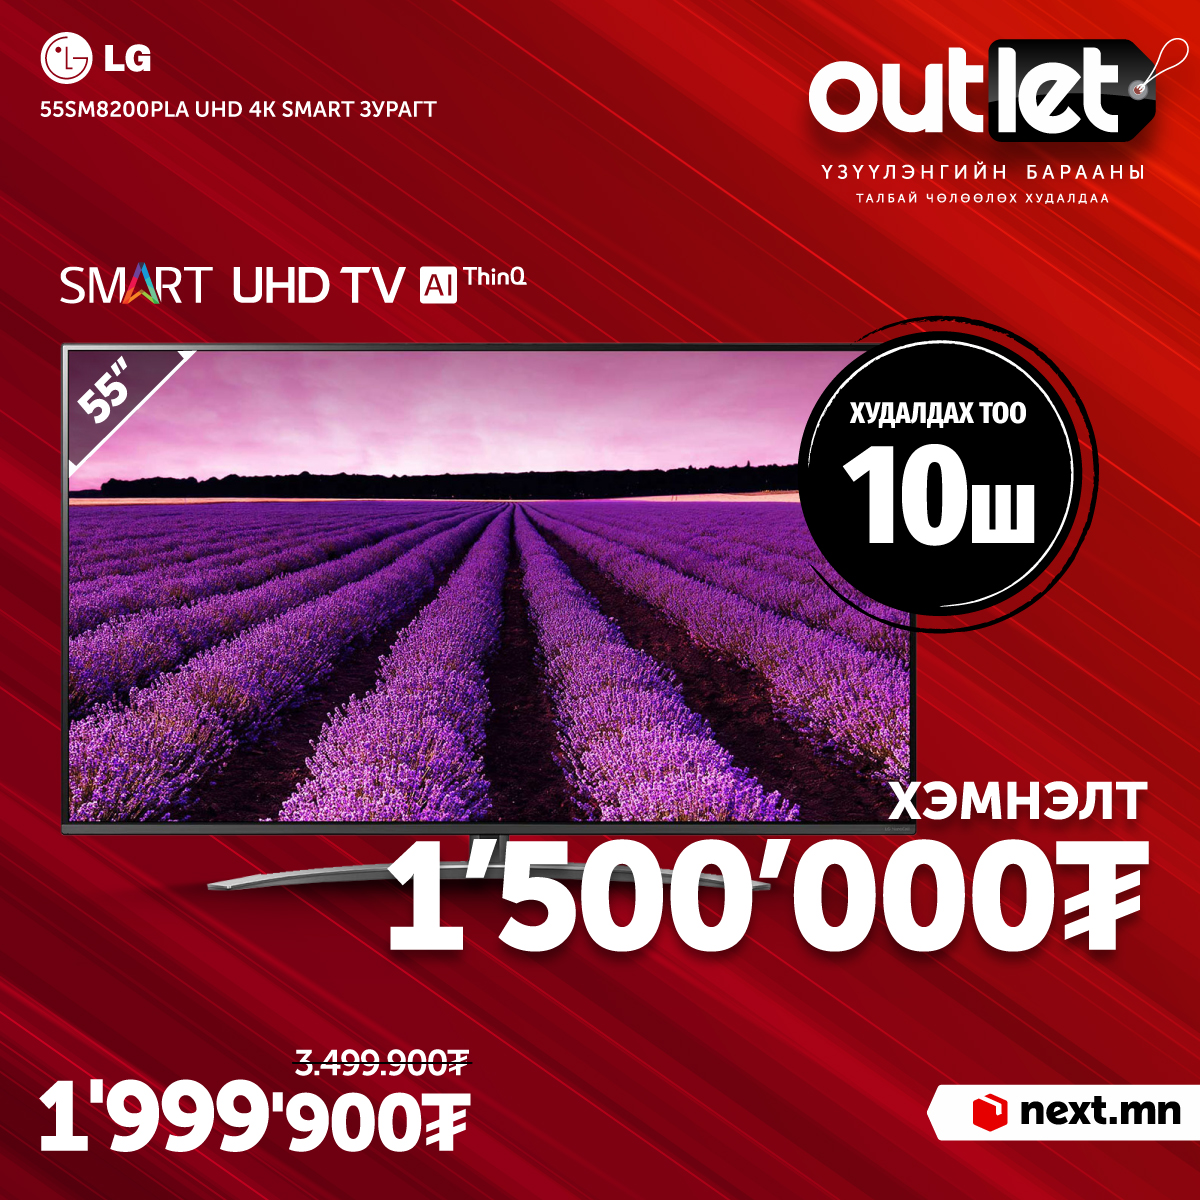 outlet (3)